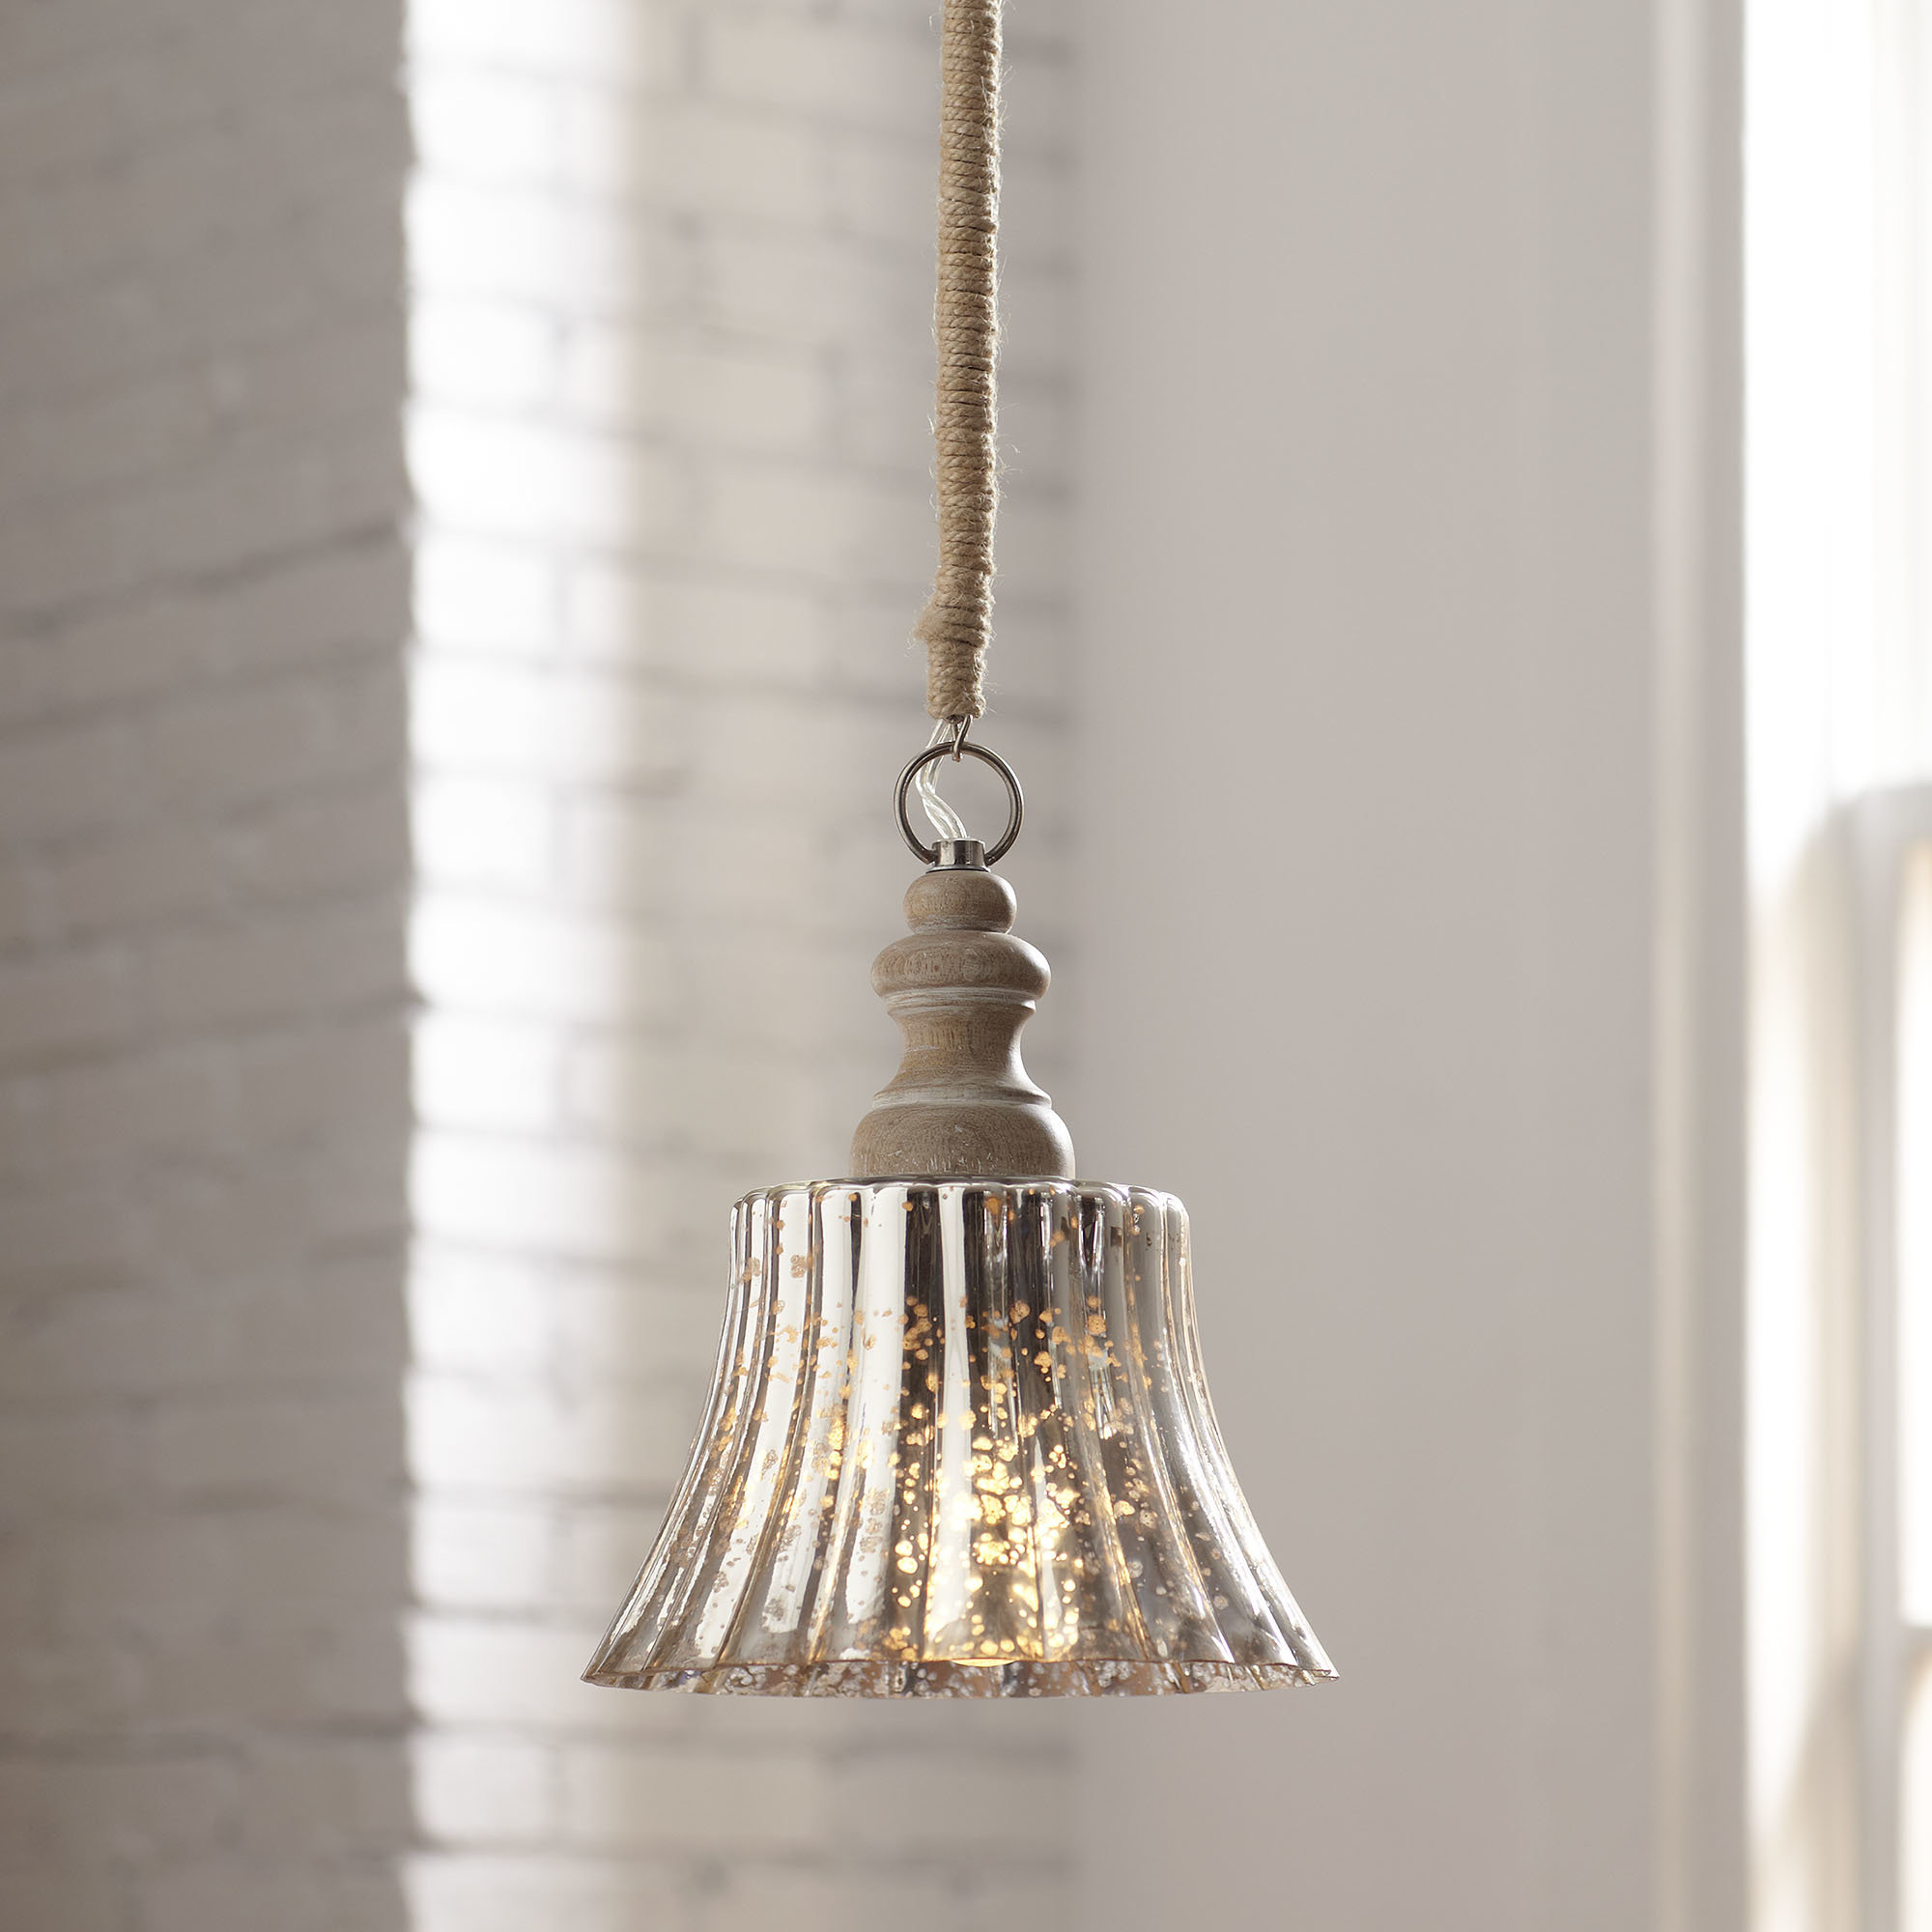 Klas 1 Light Bell Pendant With Most Up To Date Scruggs 1 Light Geometric Pendants (View 17 of 25)